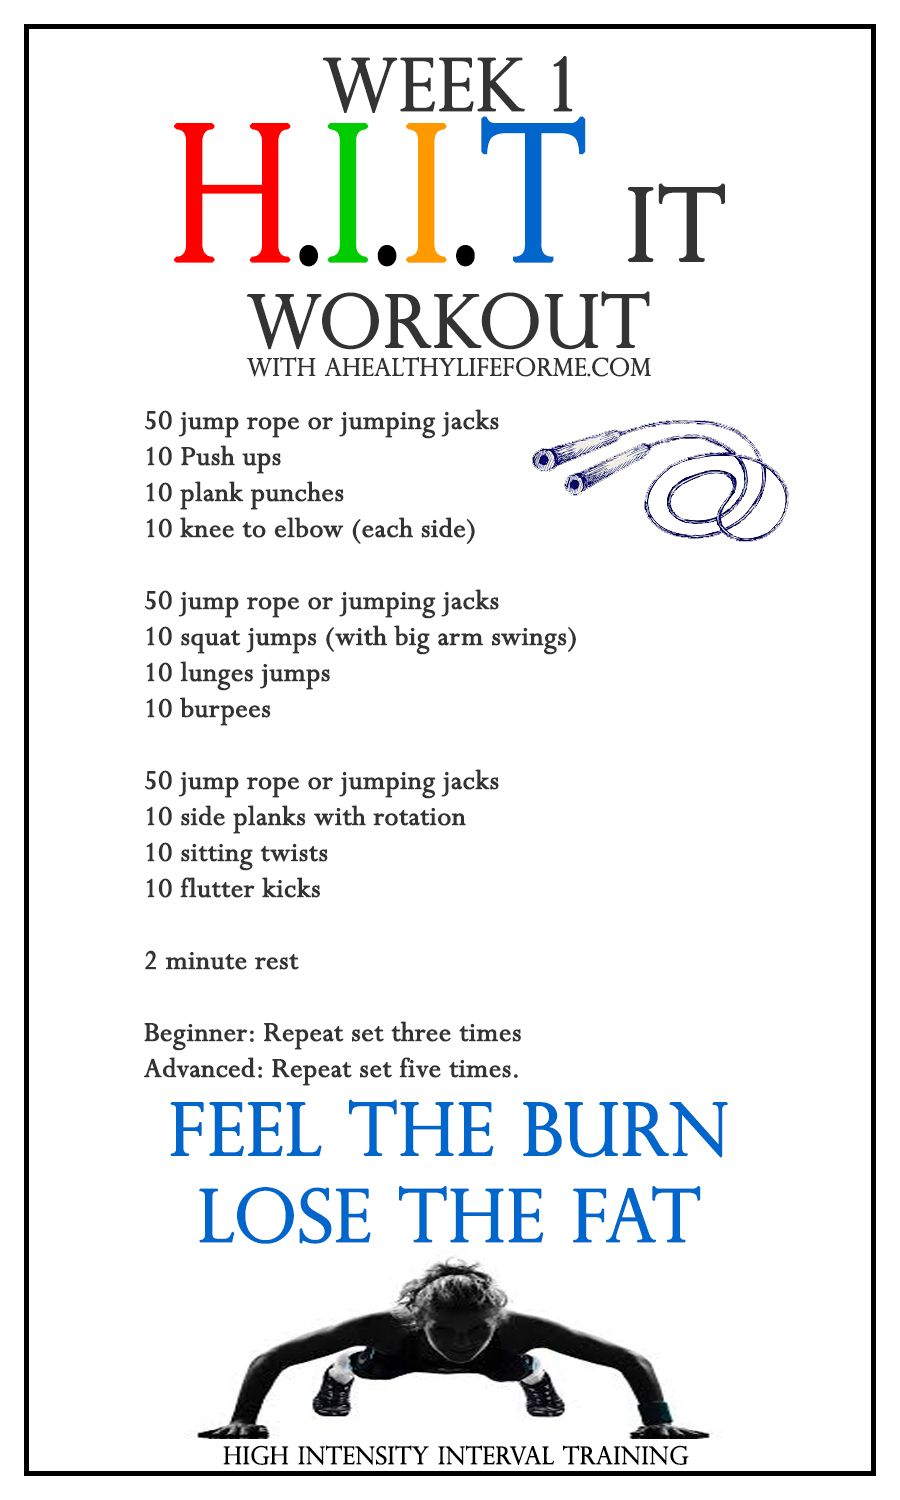 Hiit Workout Week 1 Workout Exercises And Motivation